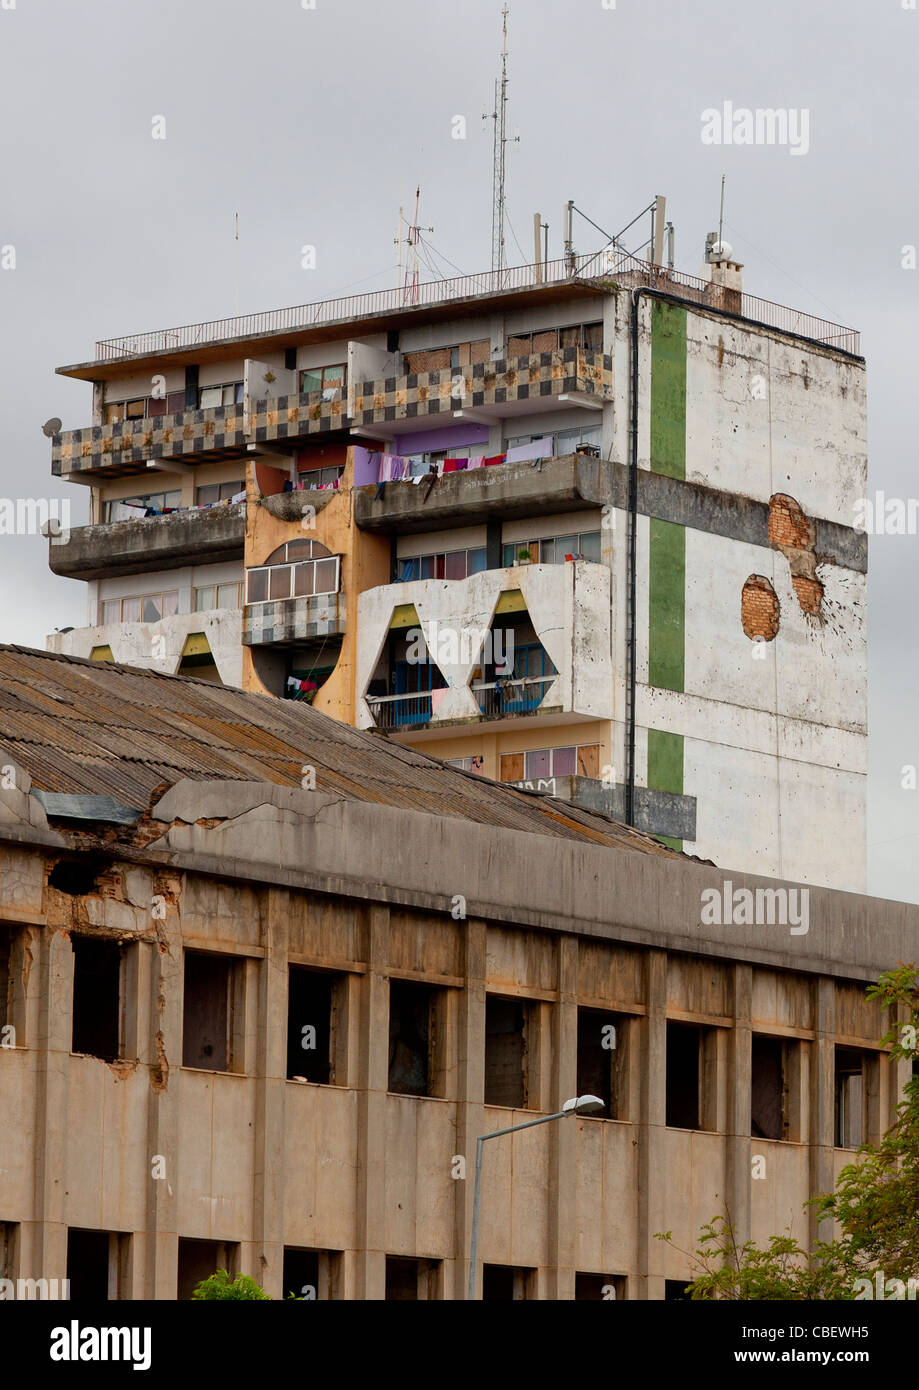 Dilapidated Buildings In Huambo, Angola - Stock Image